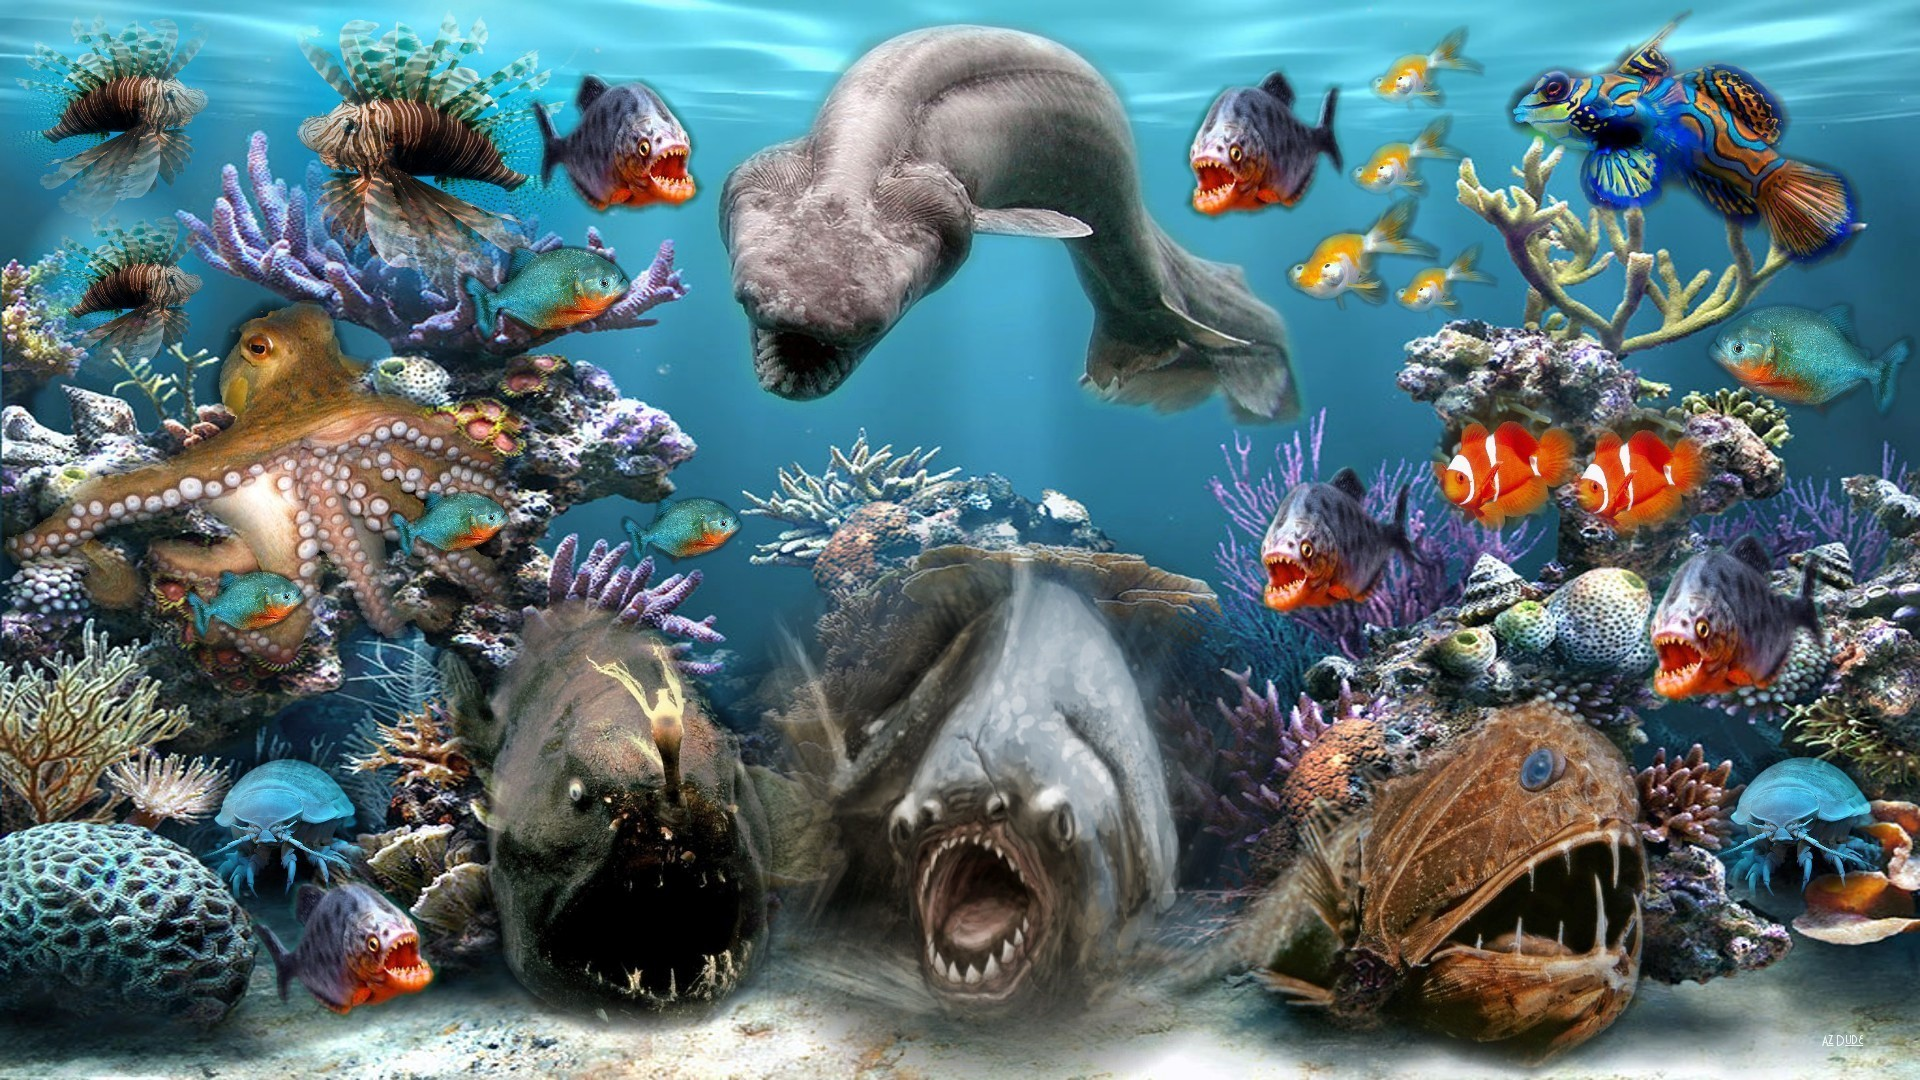 Res: 1920x1080, Awesome Ocean Sea Animals Collection Wallpaper